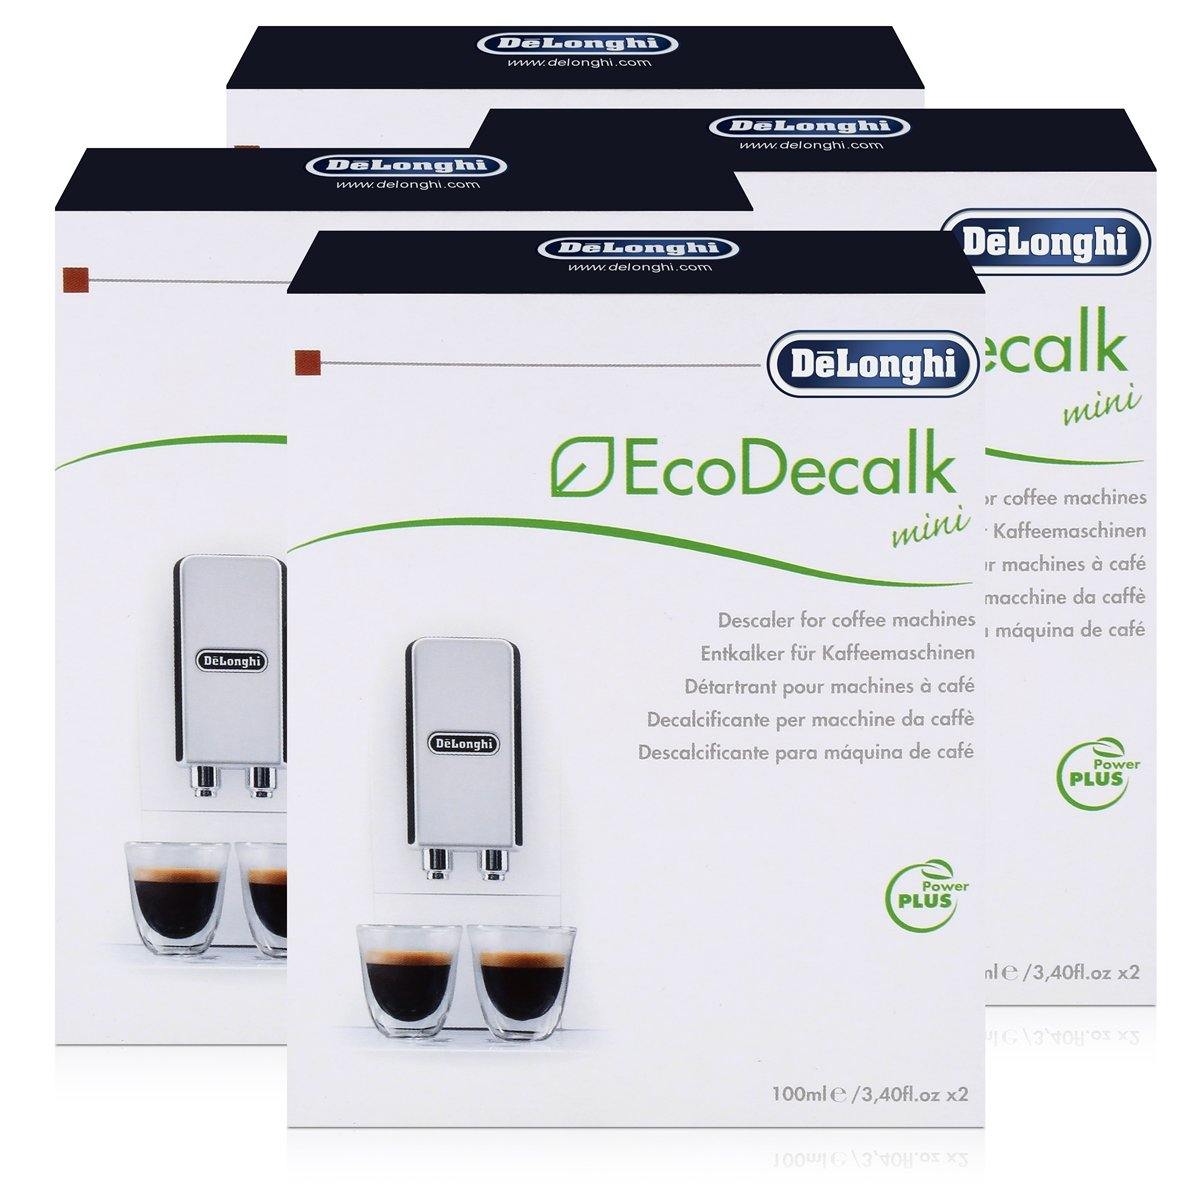 Delonghi Descaler Ecodecalk 2 x 100ml (Pack of 4)